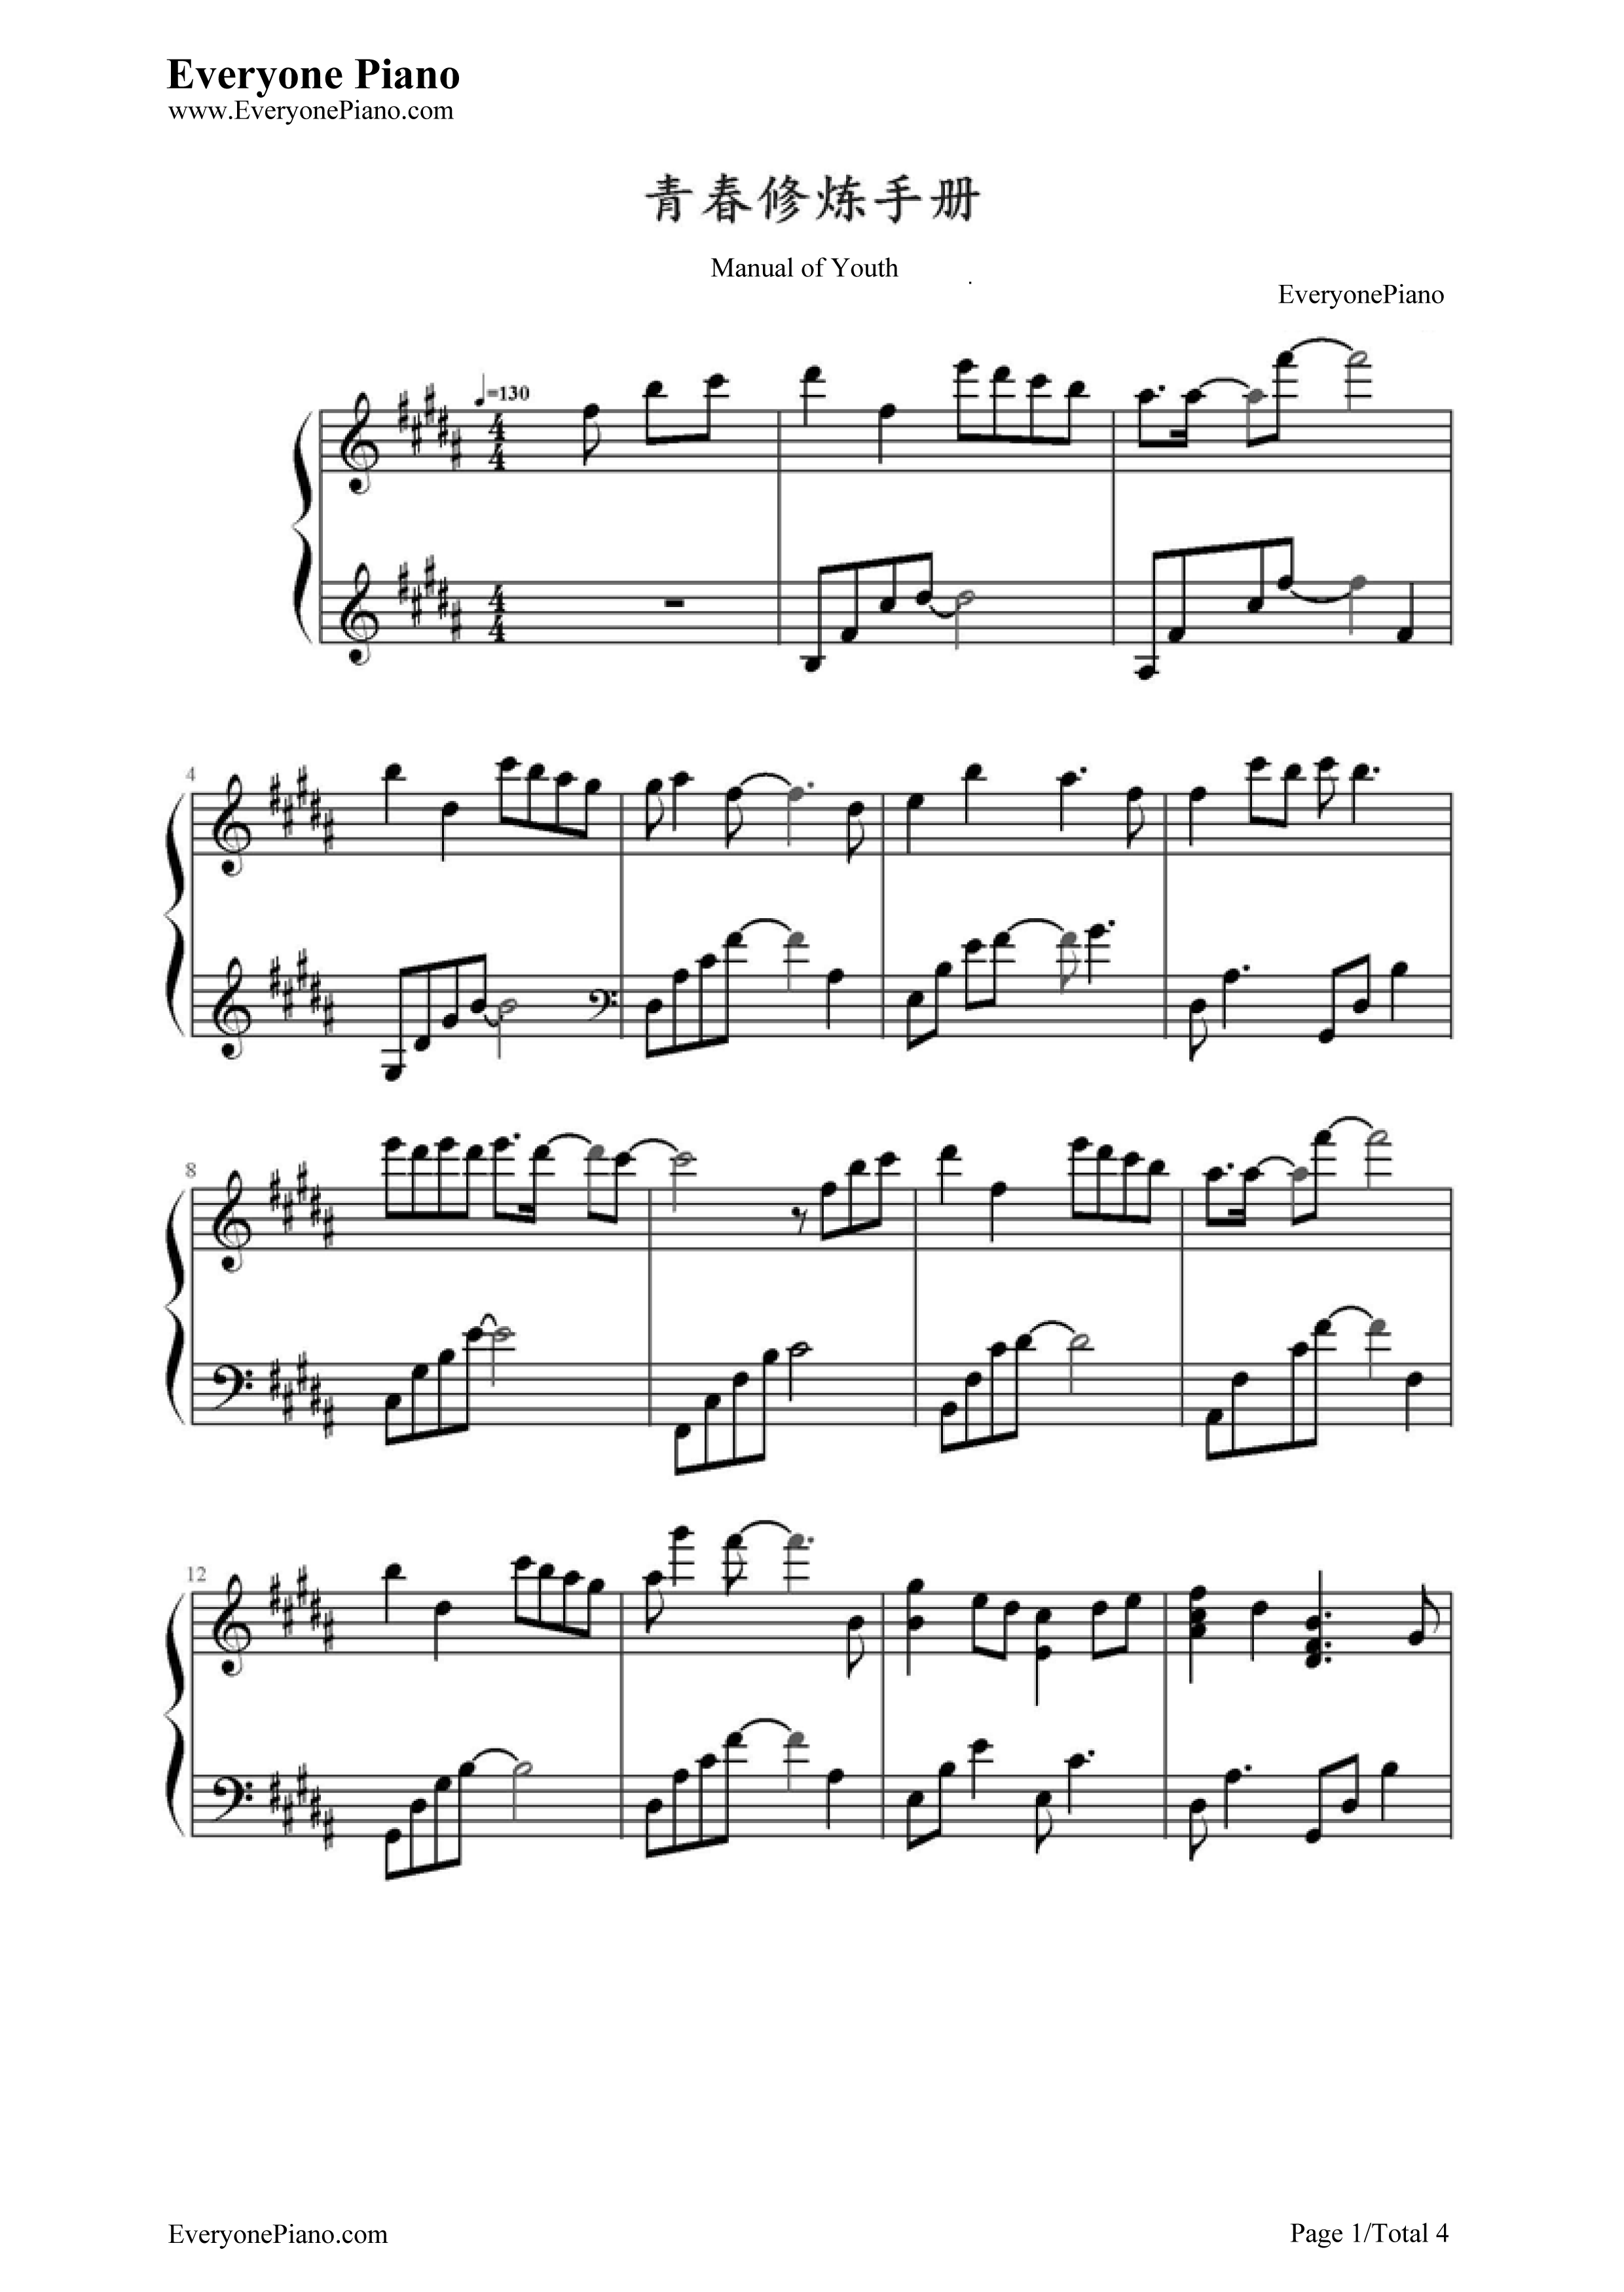 ... of Youth-TFBOYS Stave Preview 1-Free Piano Sheet Music & Piano Chords